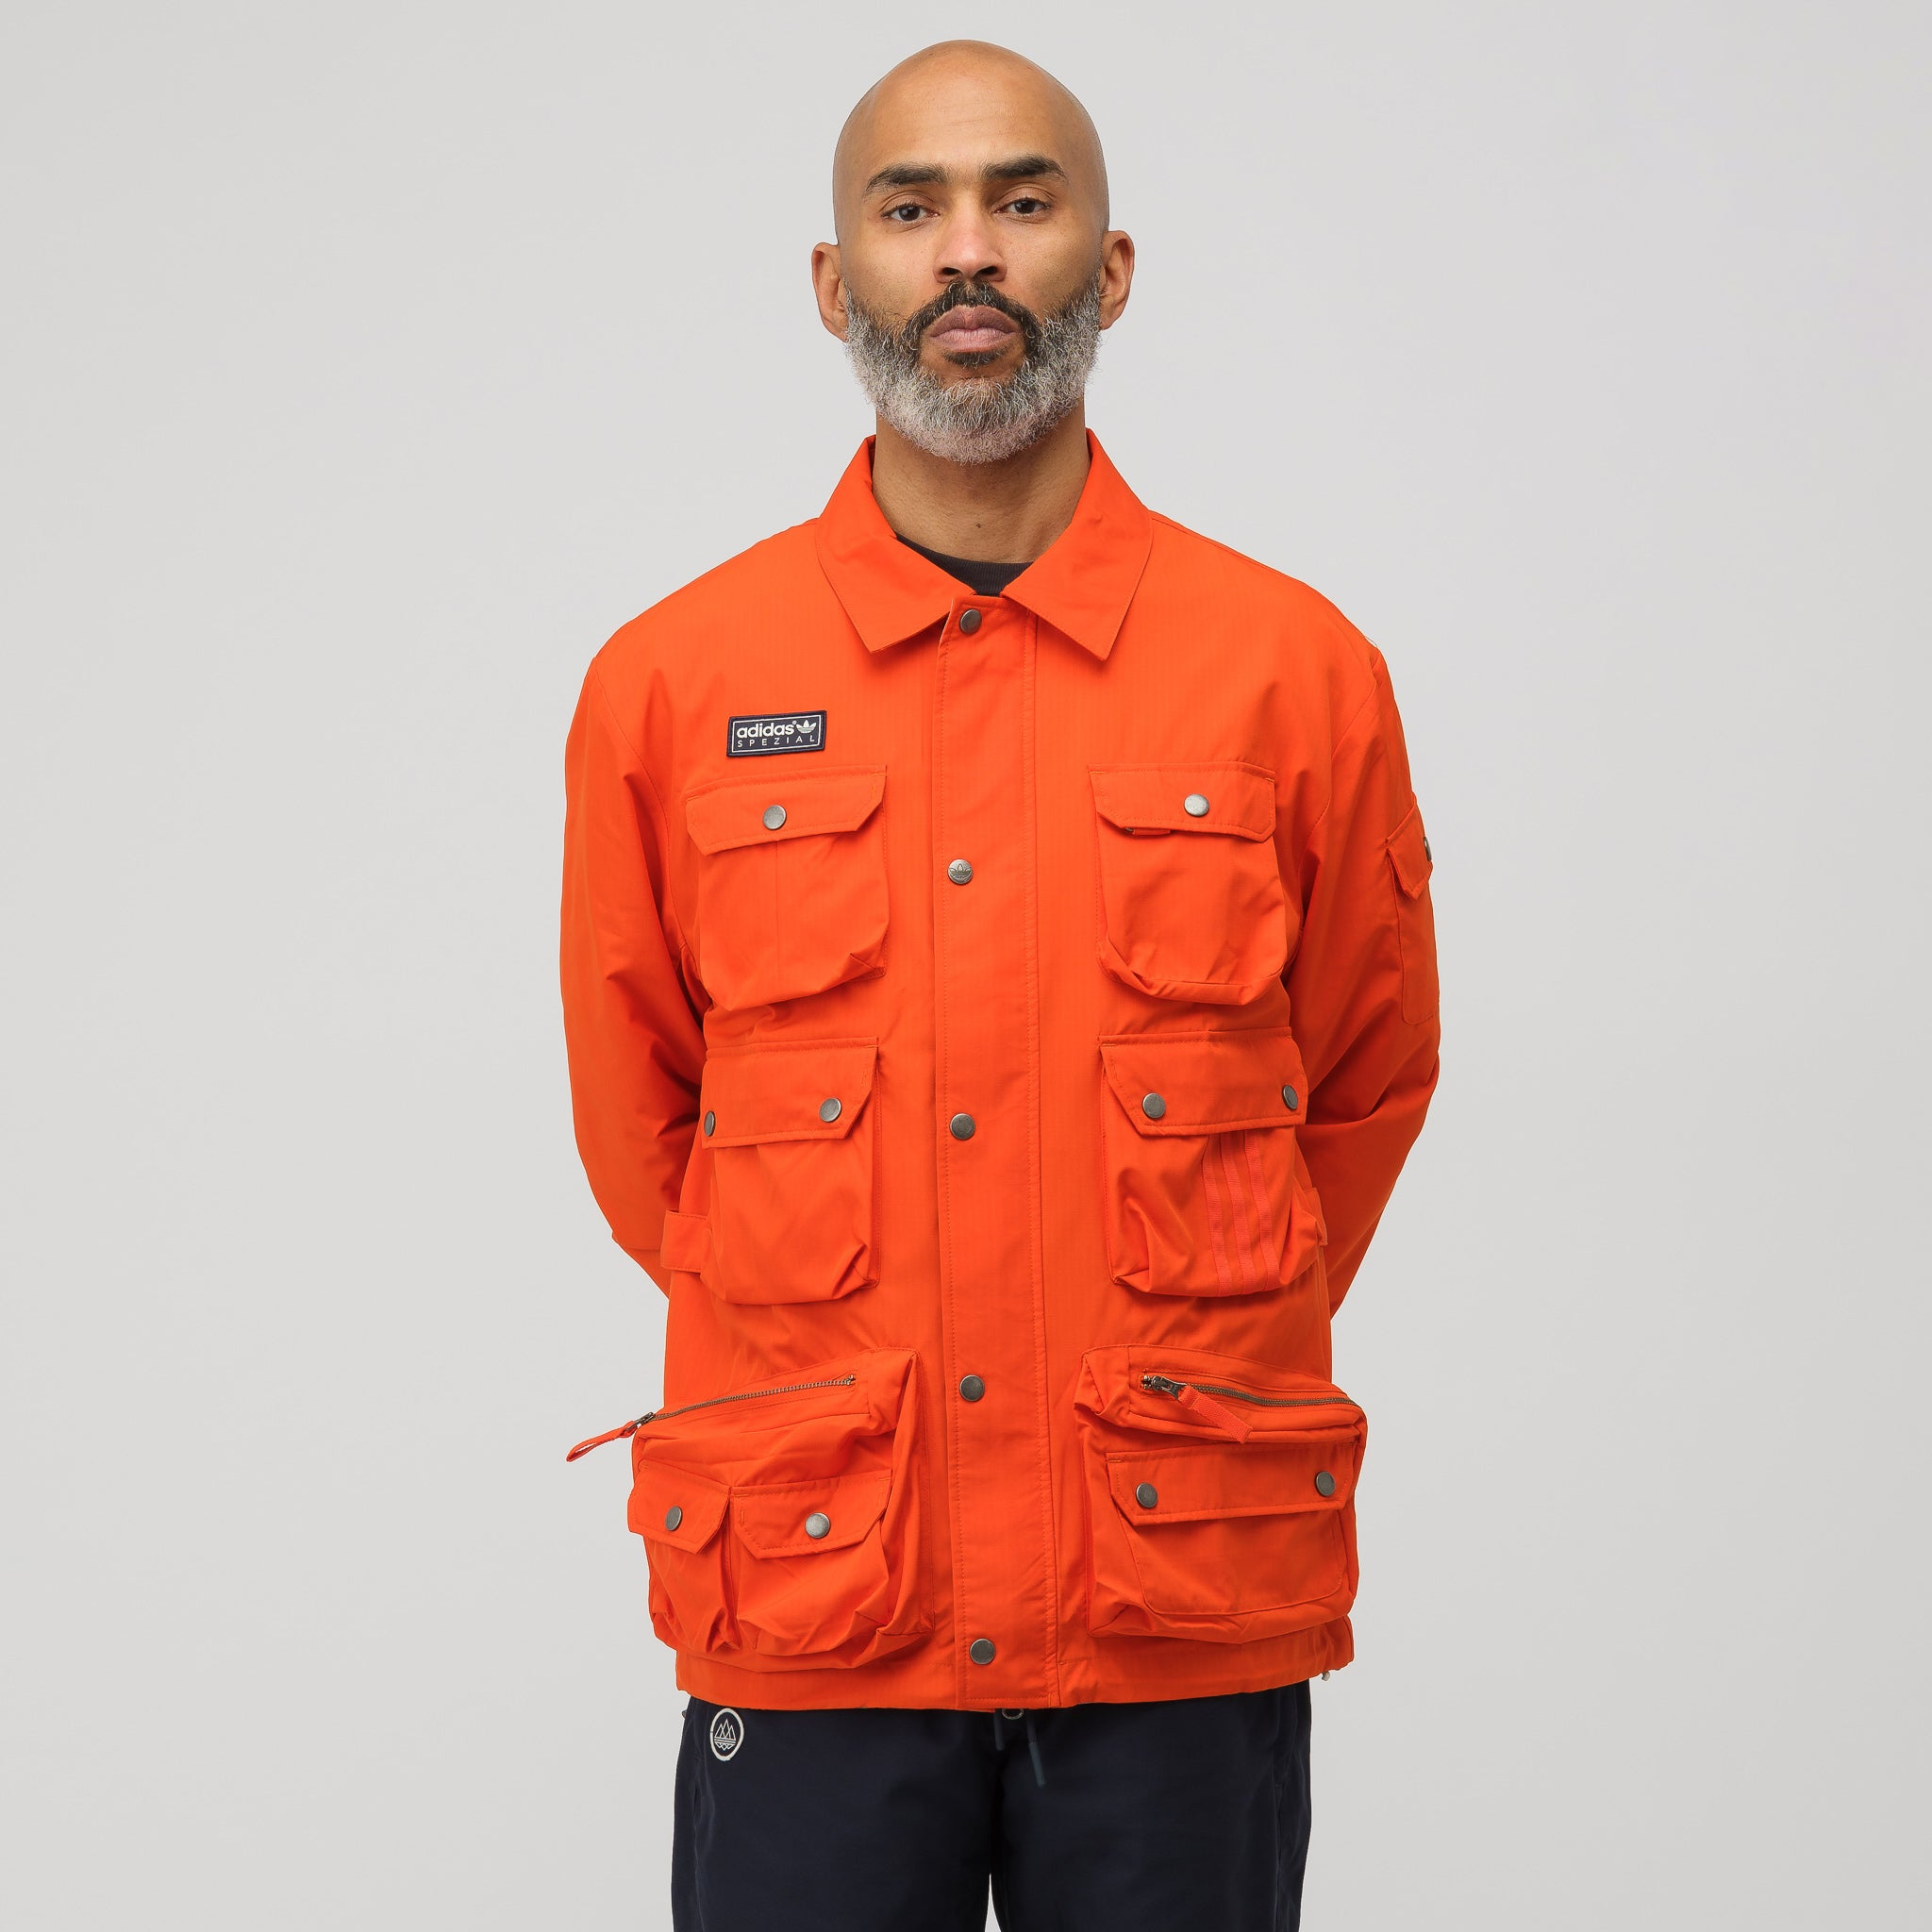 Wardour Military Jacket in Orange